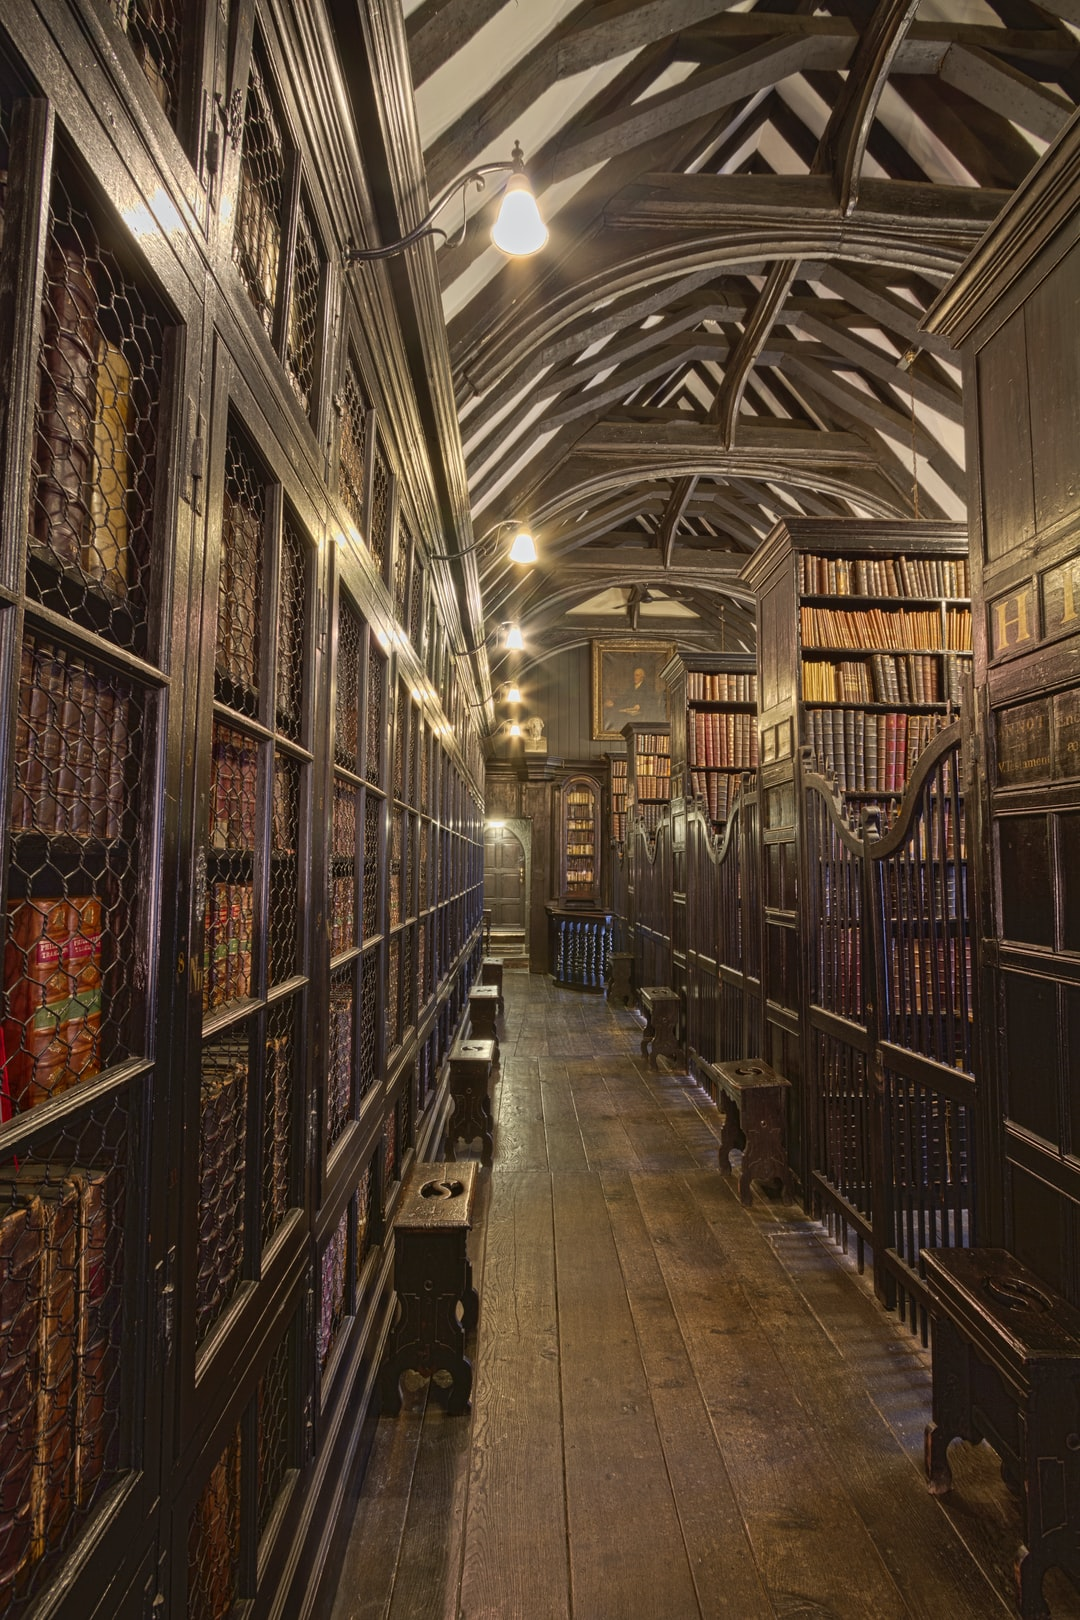 Here is a photograph taken from inside Chetham's Library.  Located in Manchester, Greater Manchester, England.  Website : www.michaeldbeckwith.com   Email : michael@michaeldbeckwith.com